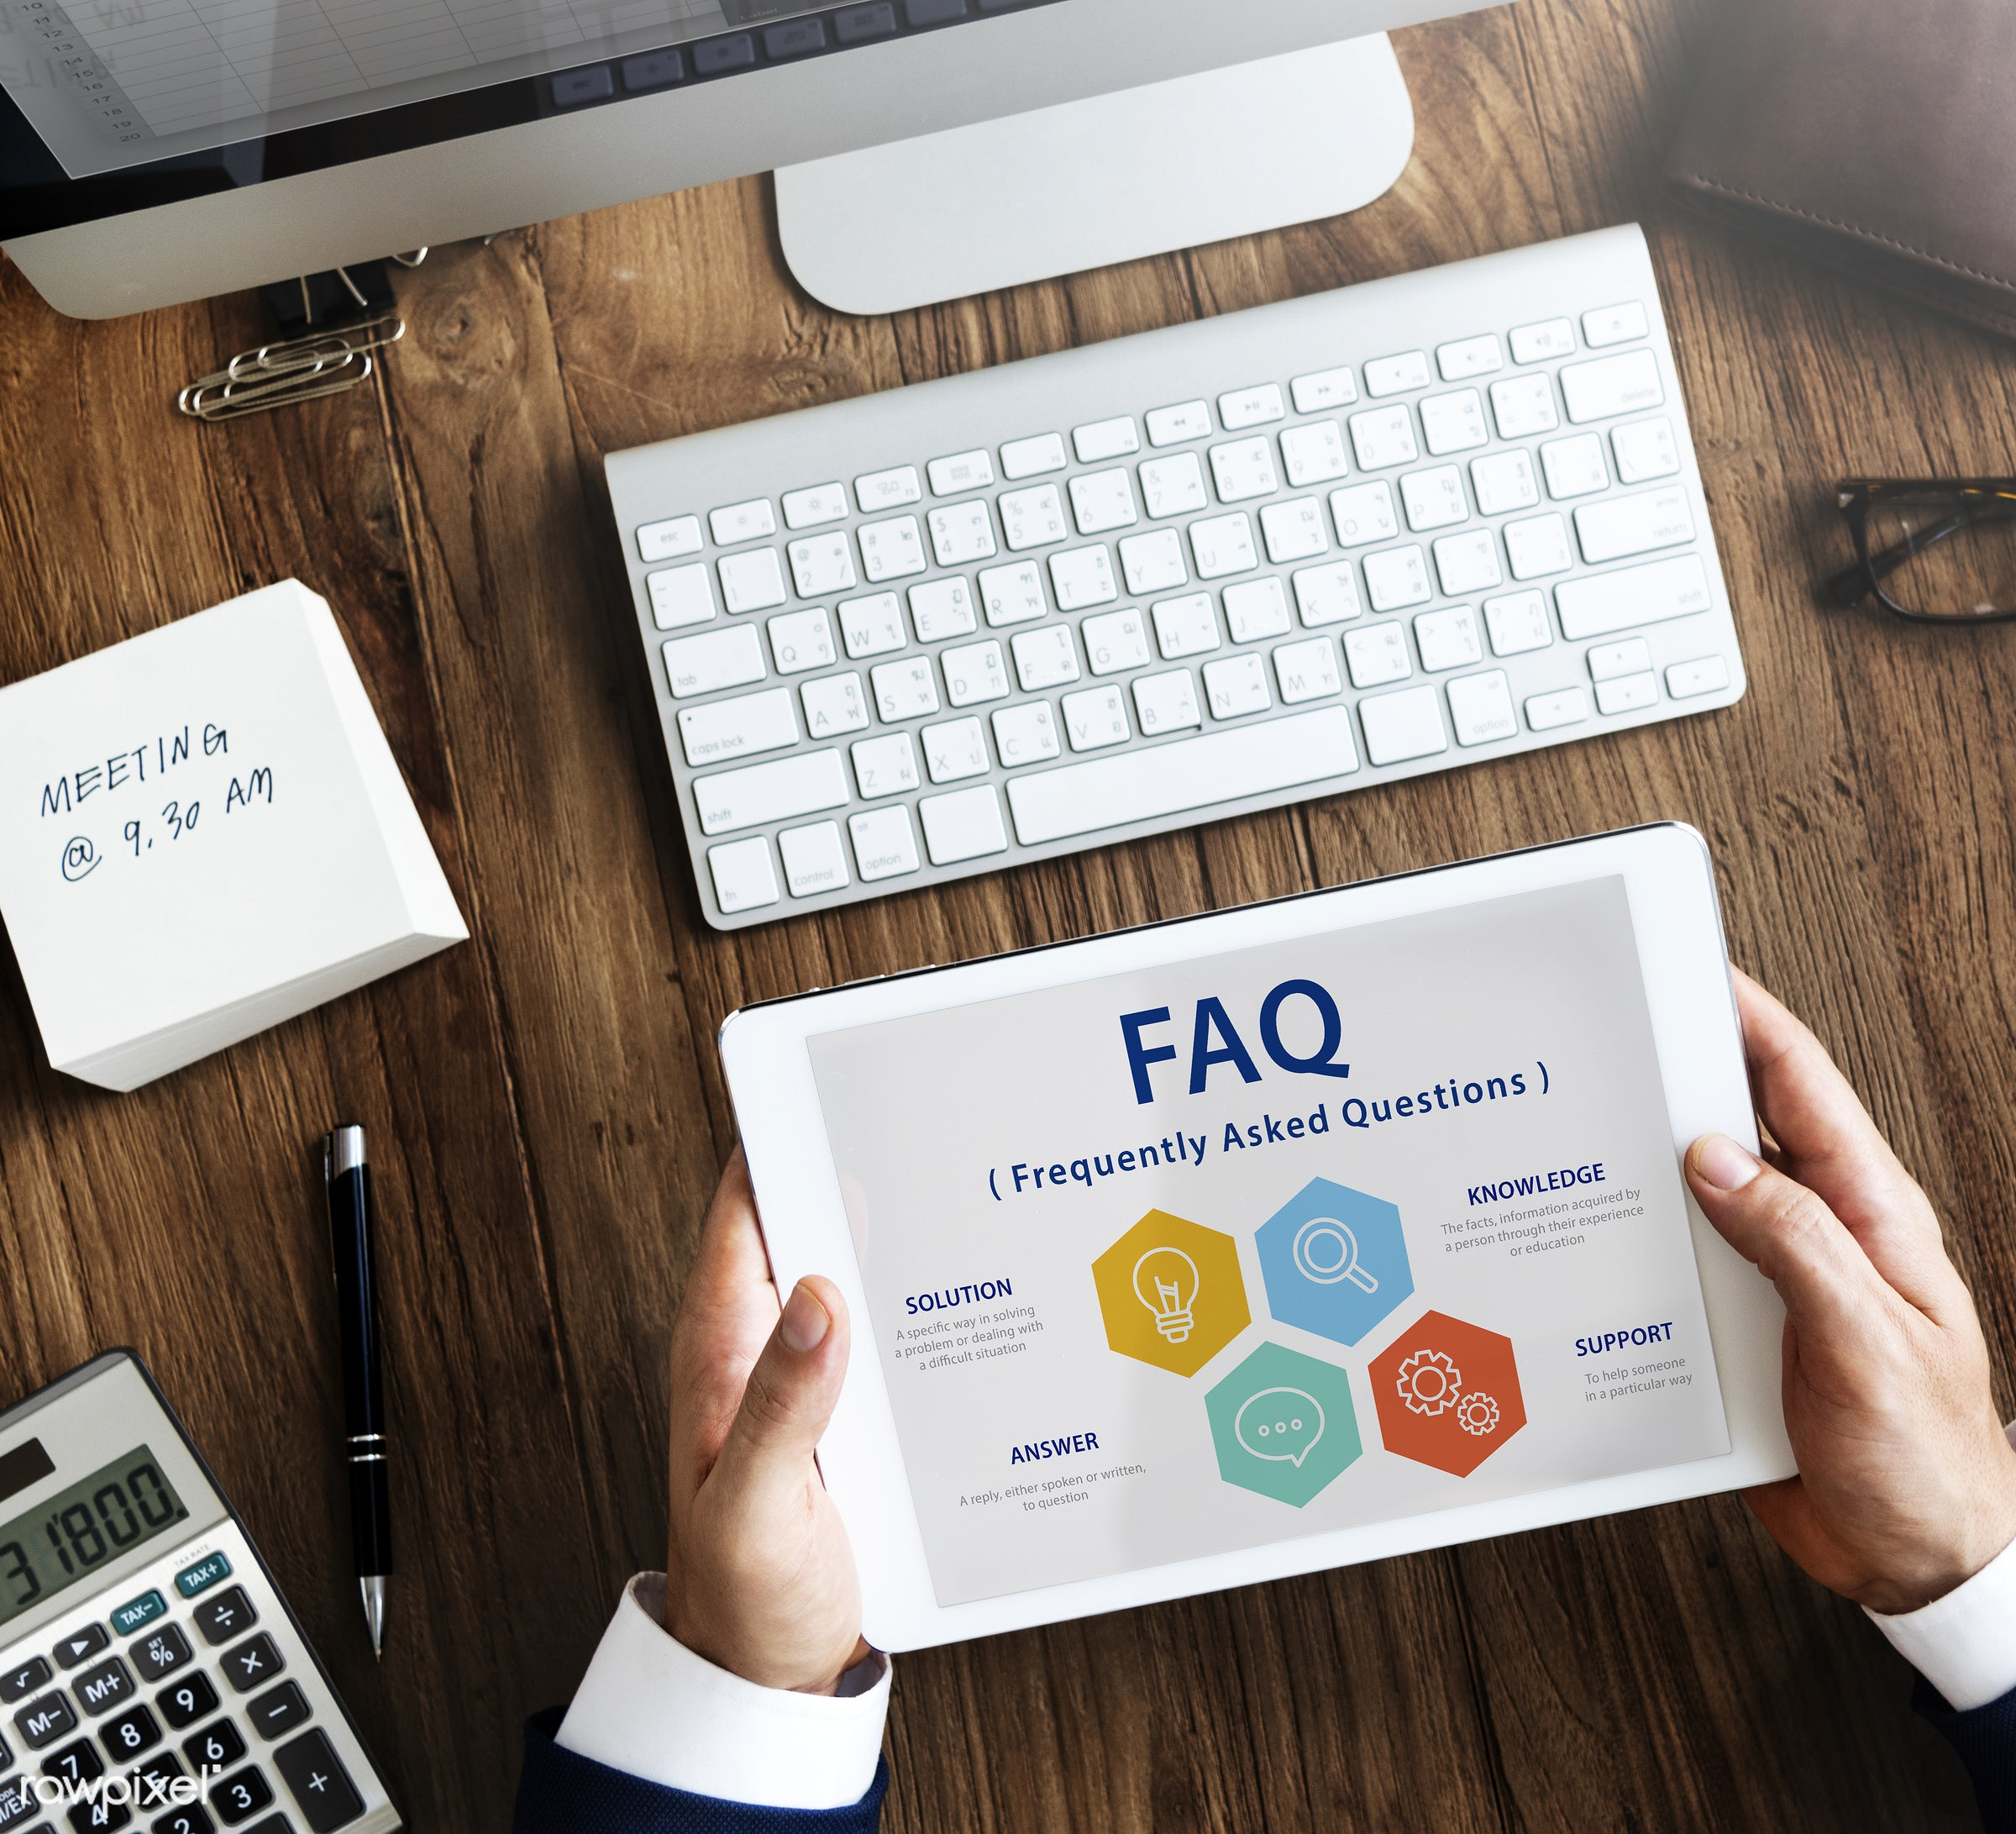 faq, feedback, aerial view, answer, answers, business, businessman, communication, connect, contemporary, desk, digital...